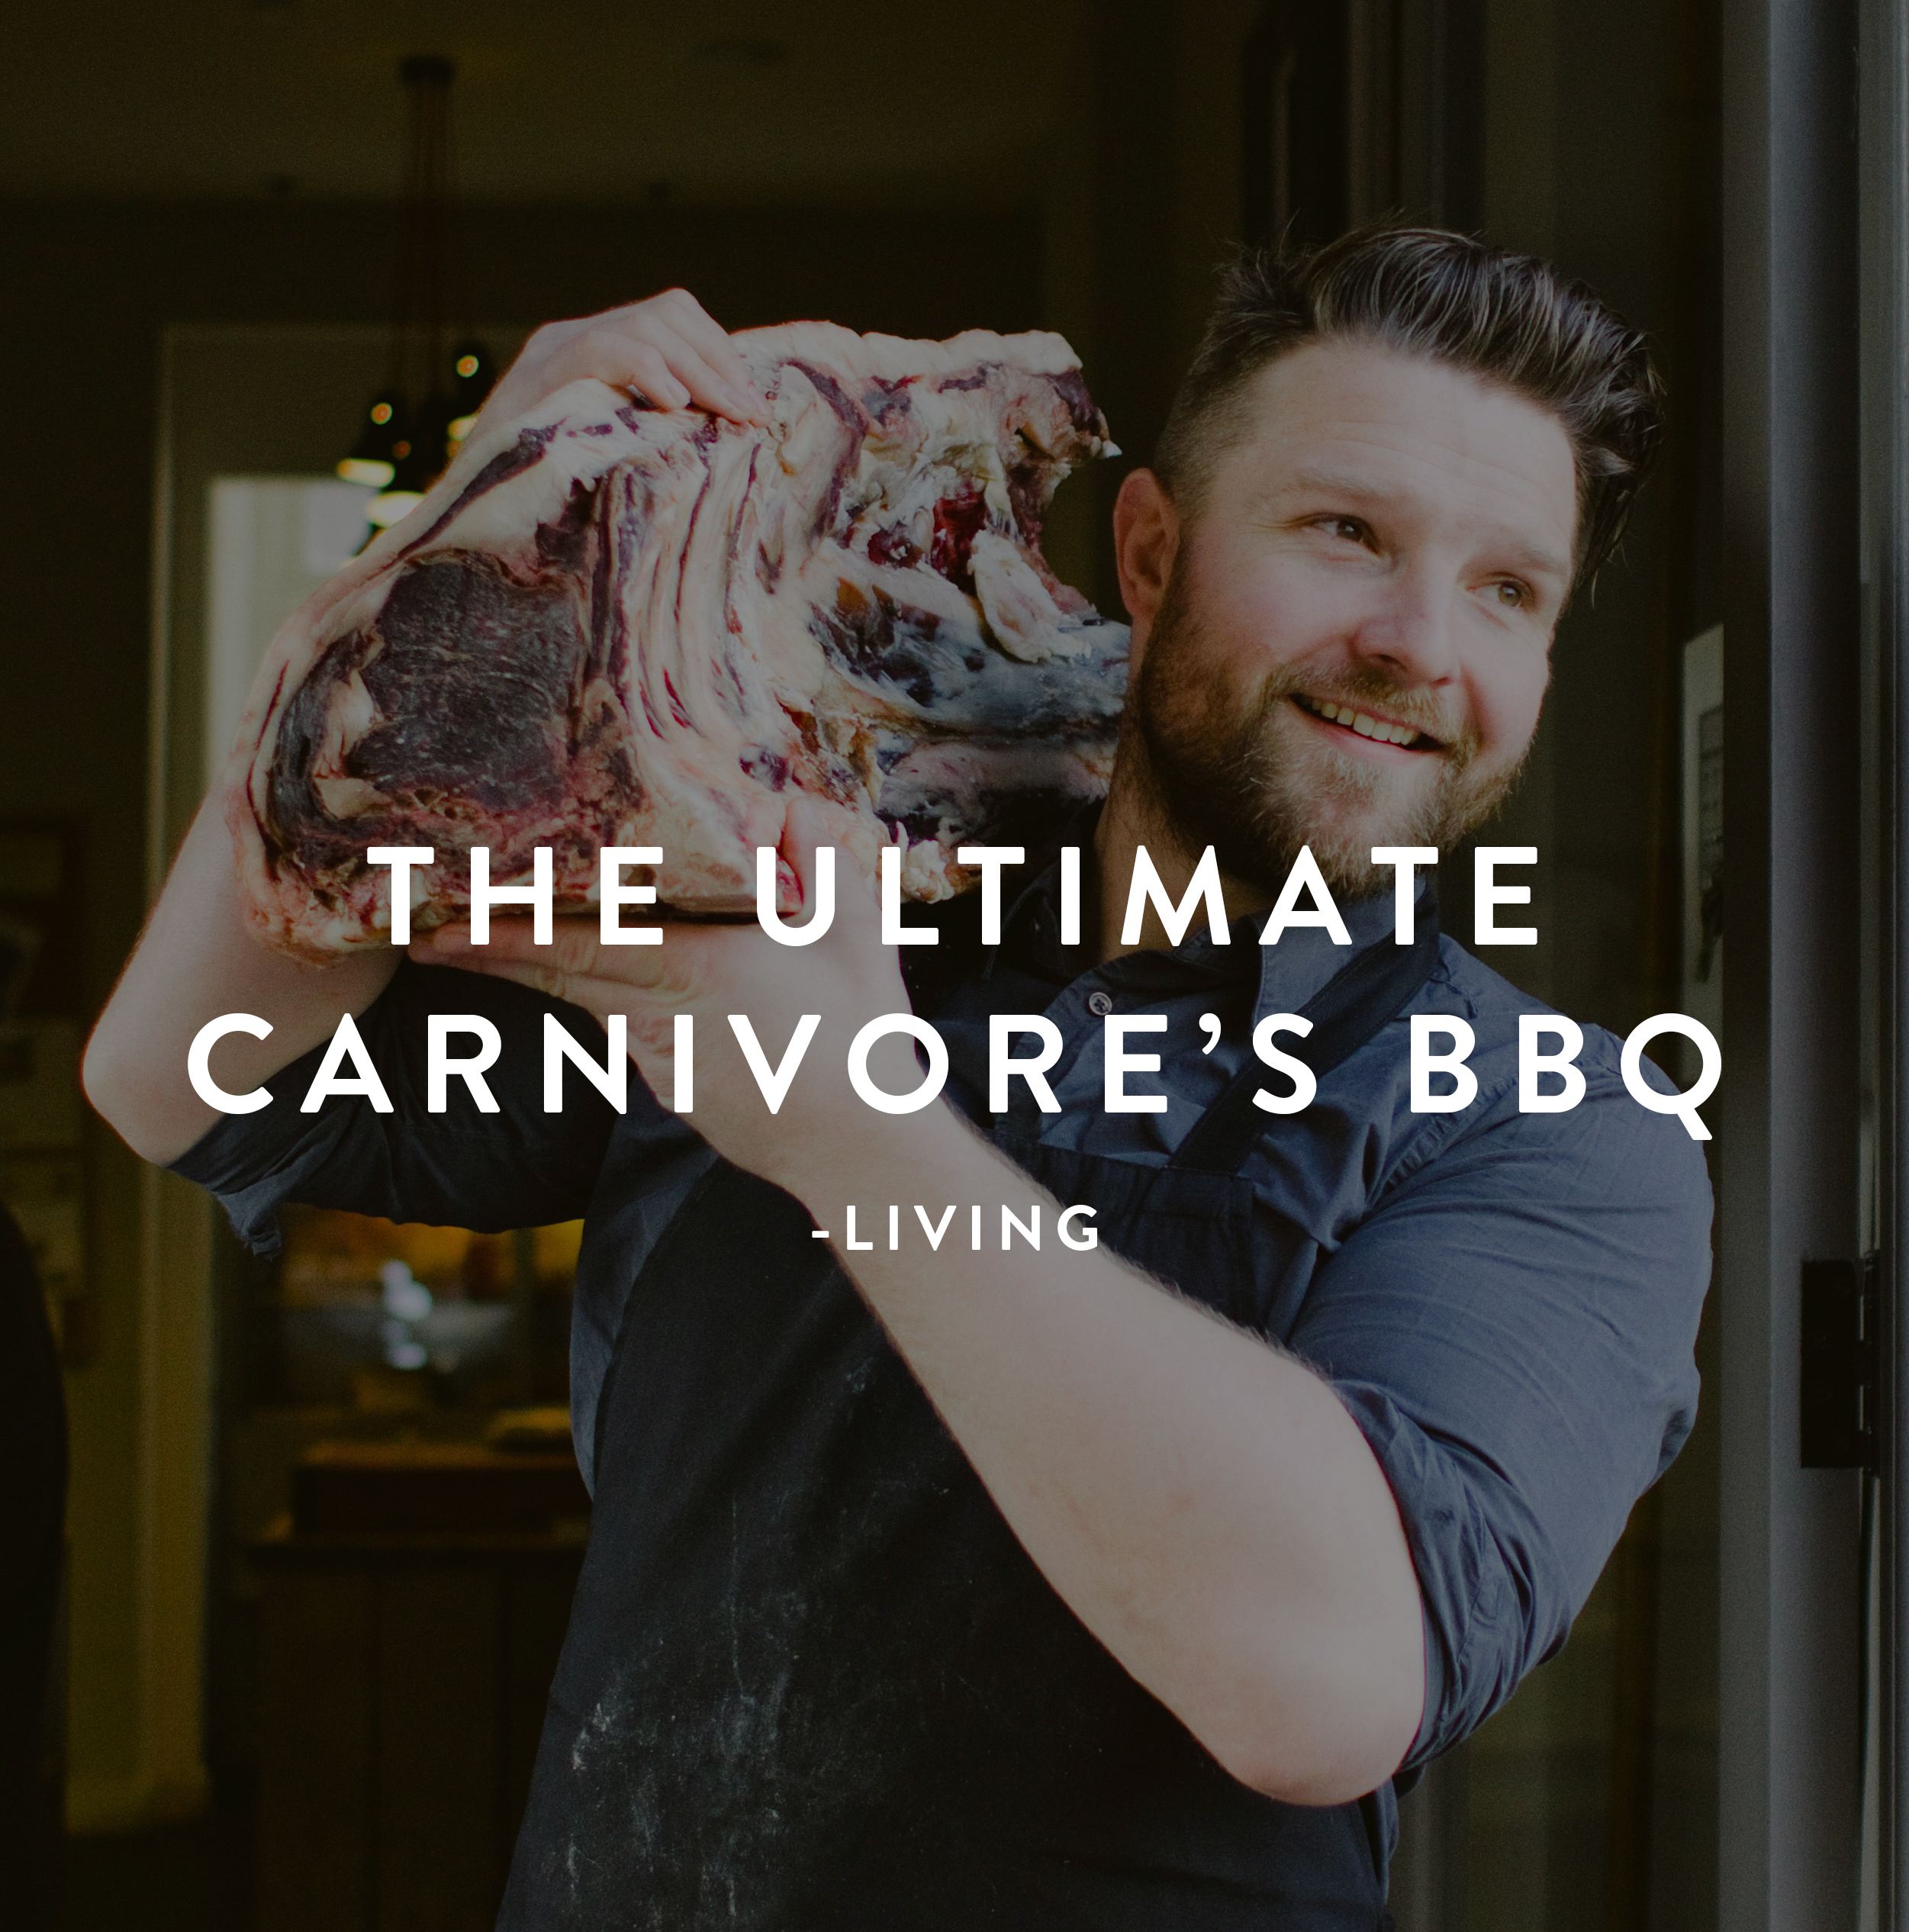 THE ULTIMATE CARNIVORE'S BBQ